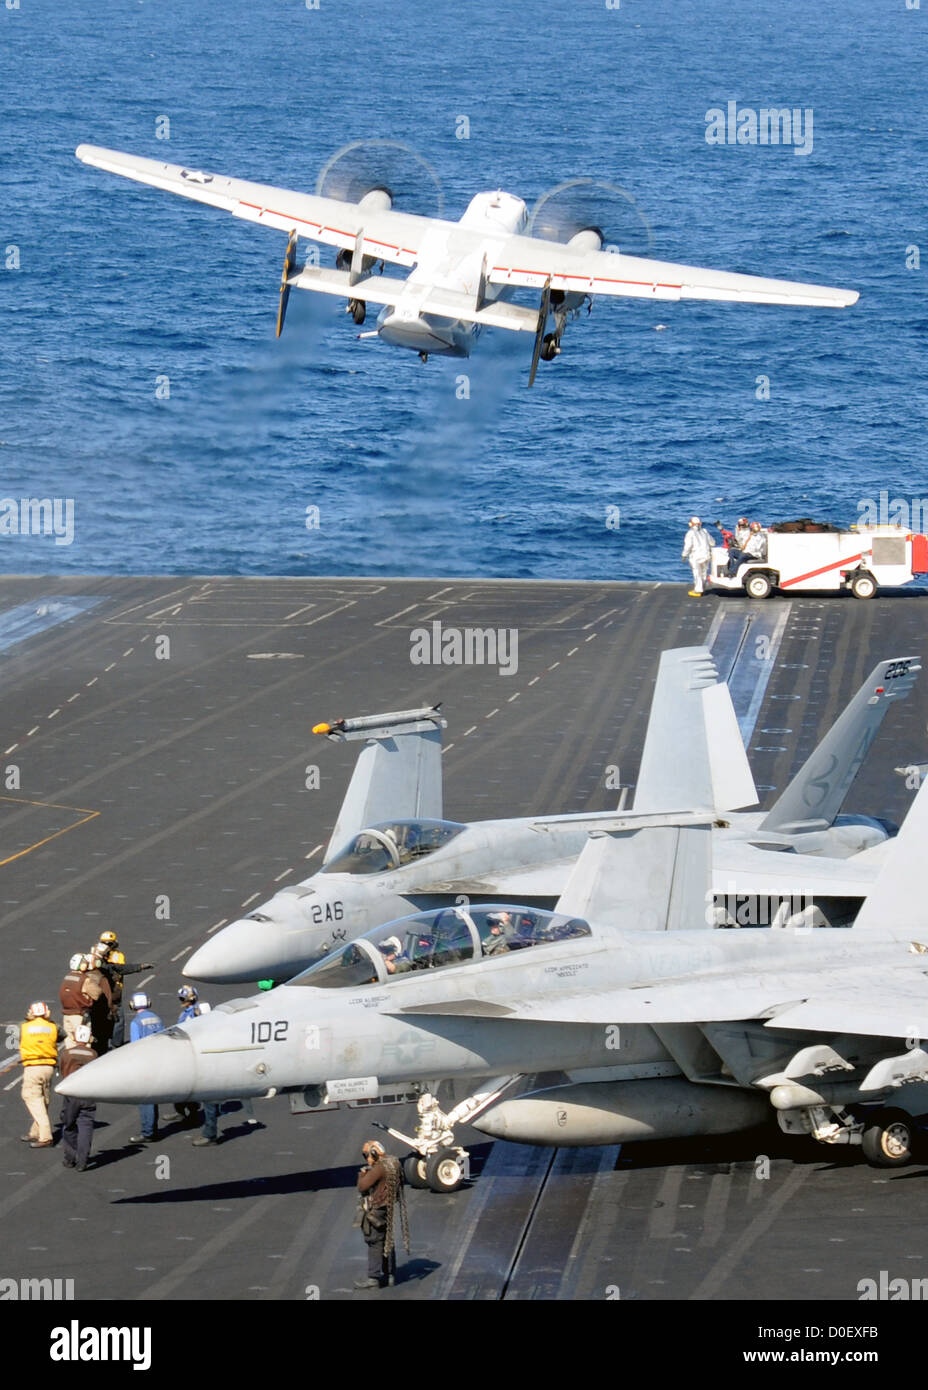 A C-2A Greyhound launches from the flight deck of the aircraft carrier USS Nimitz November 11, 2012 in the Pacific - Stock Image